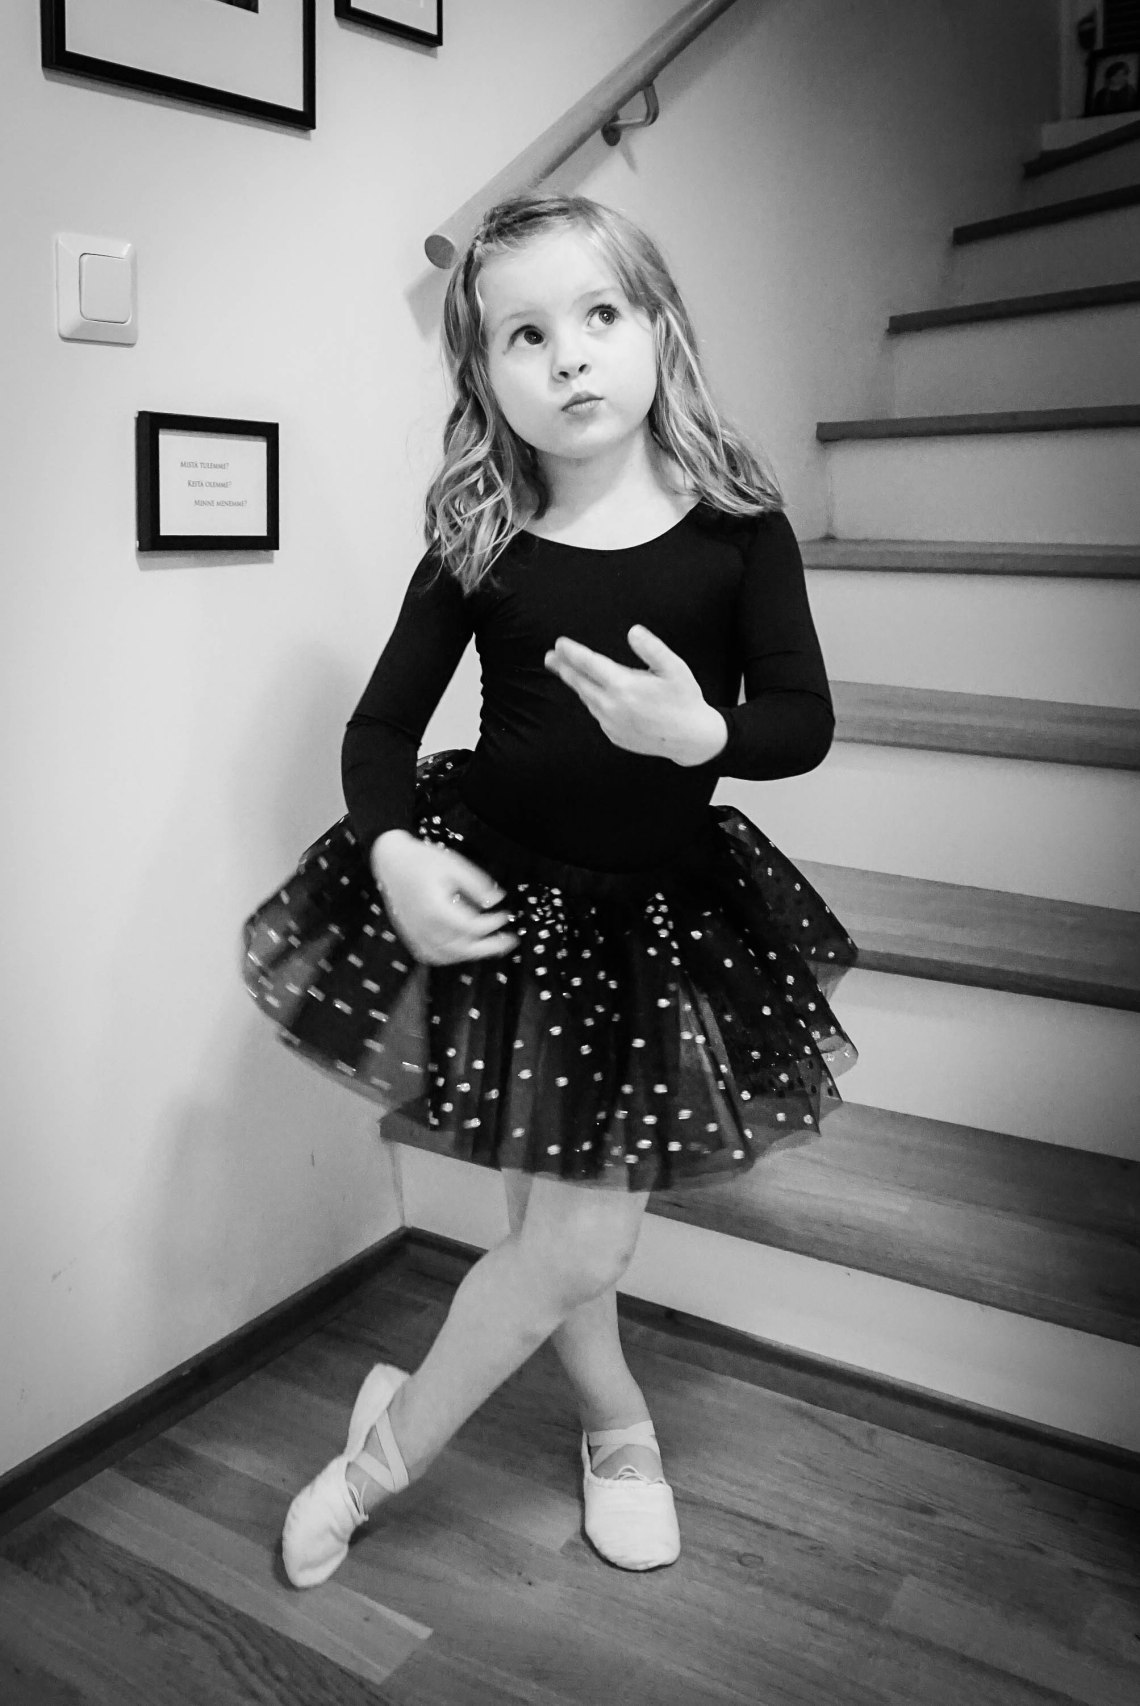 Black ballerina costume